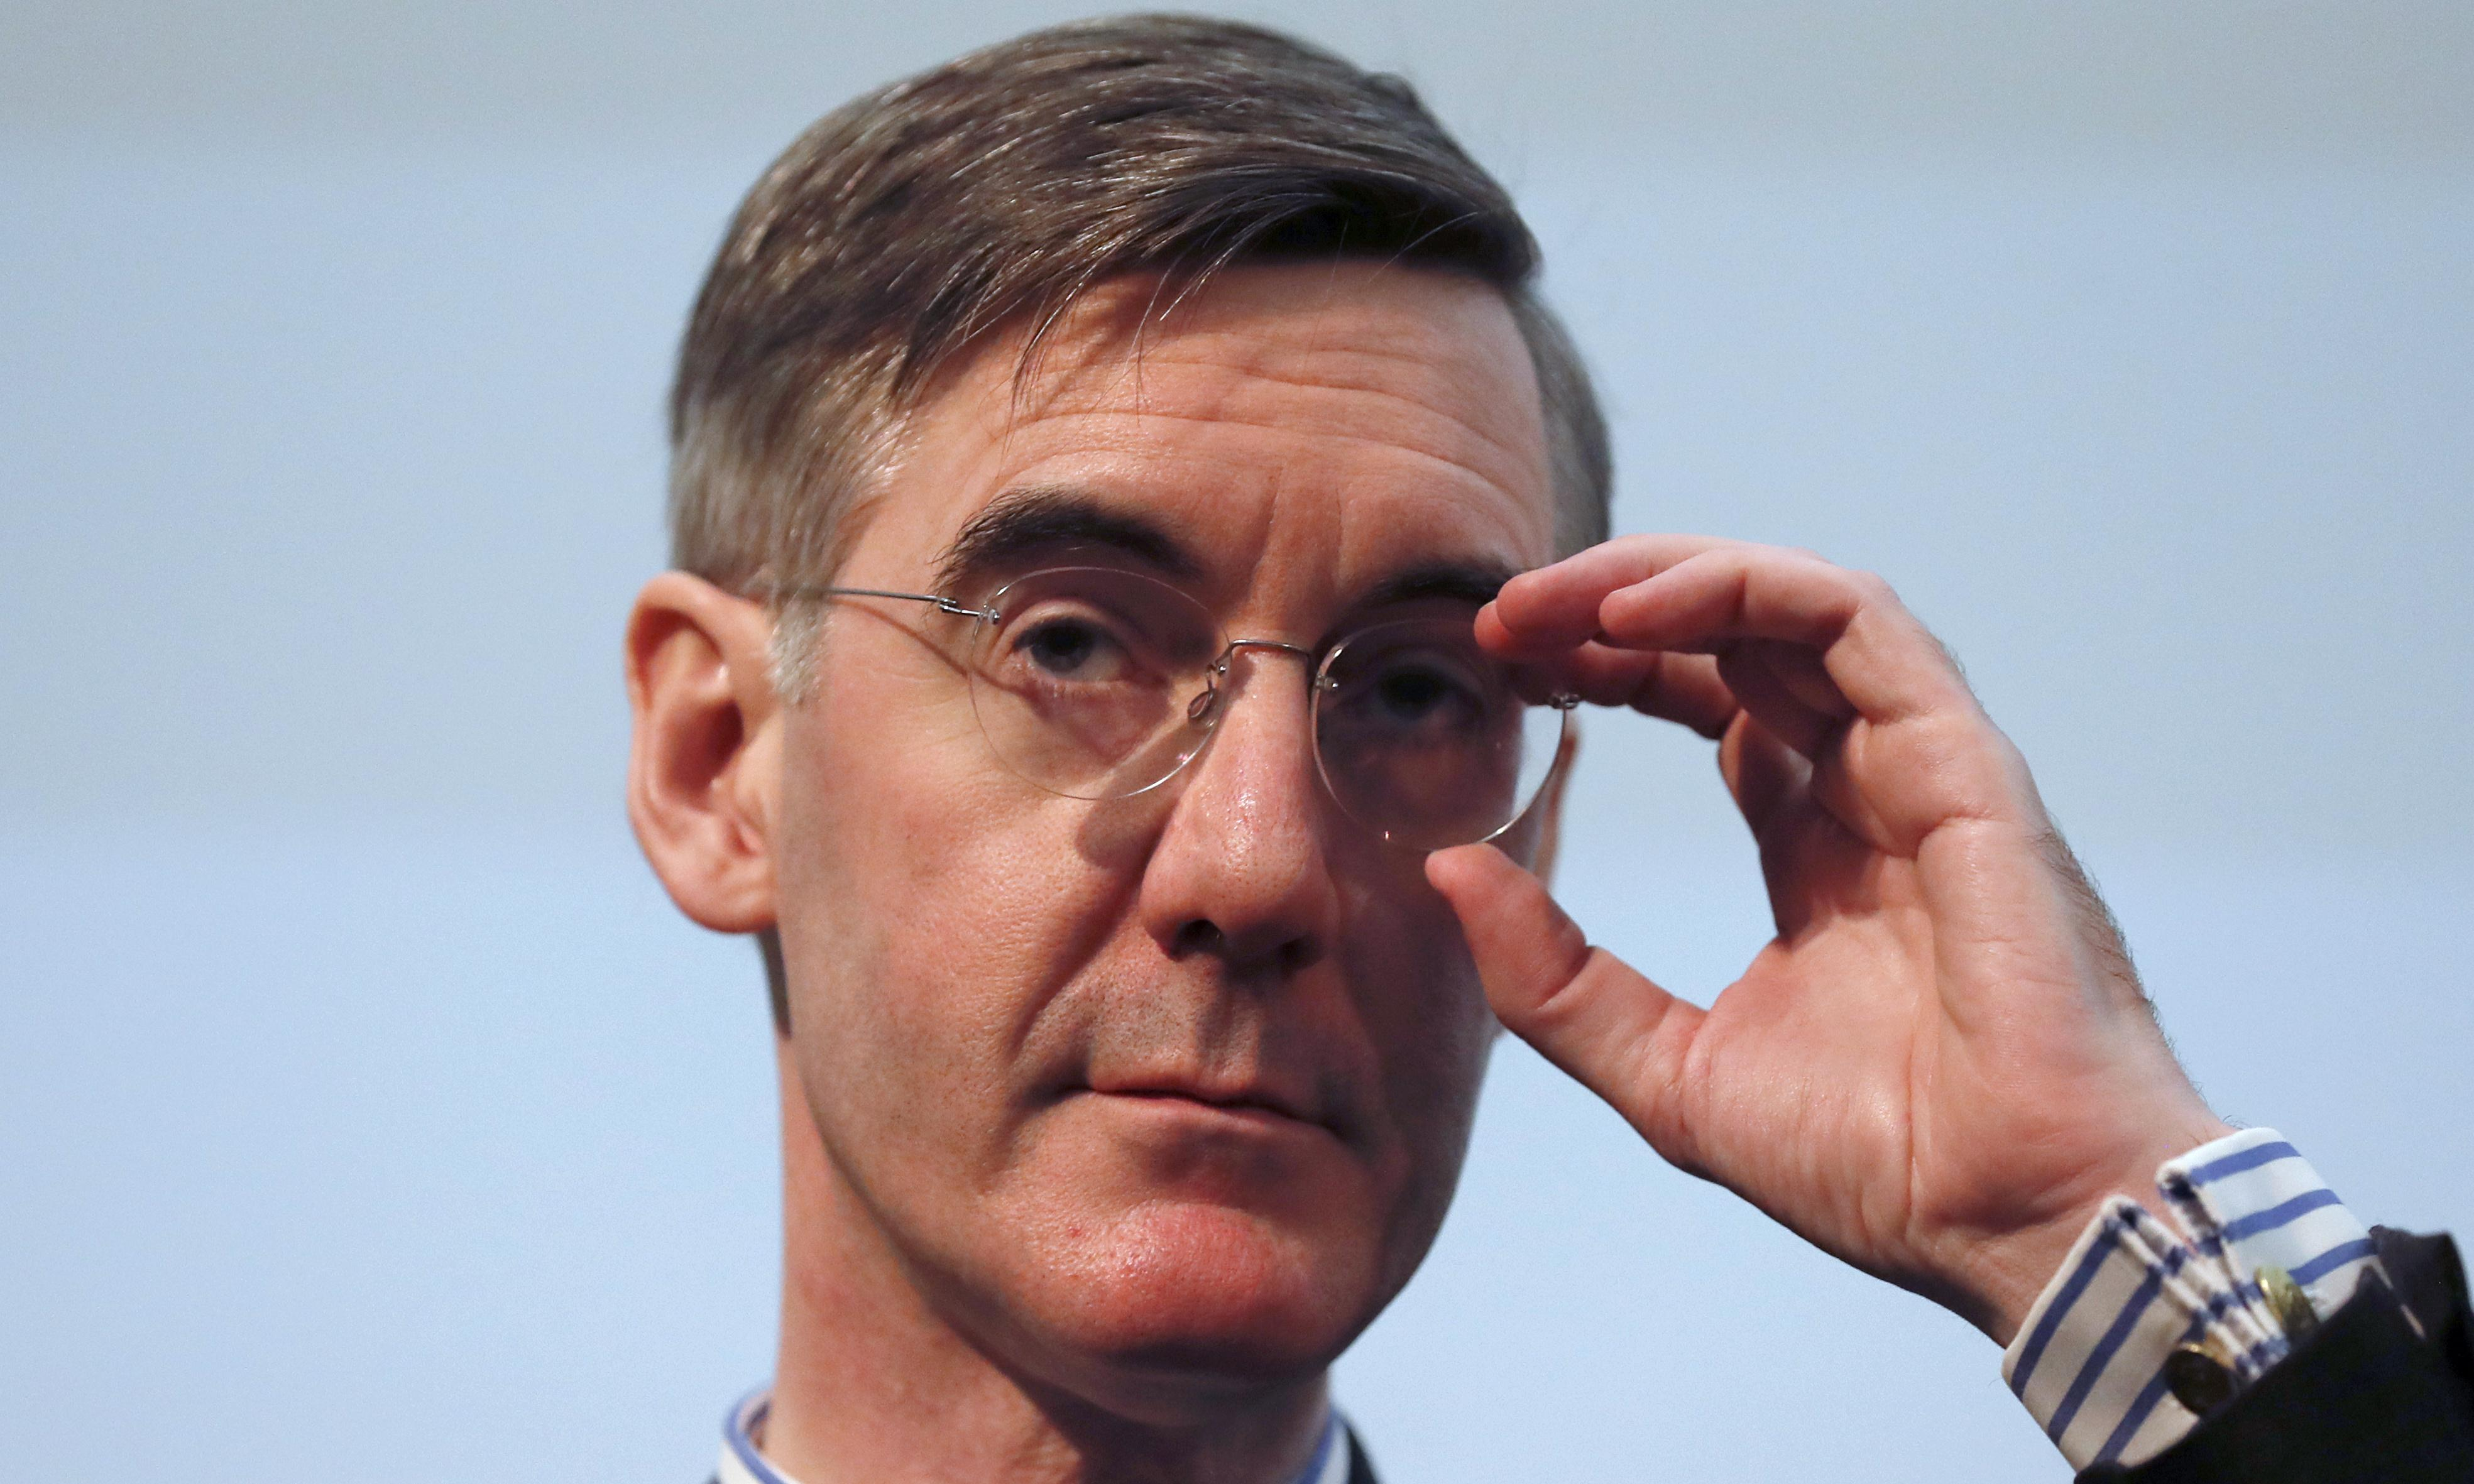 An invitation to get up Rees-Mogg's nose